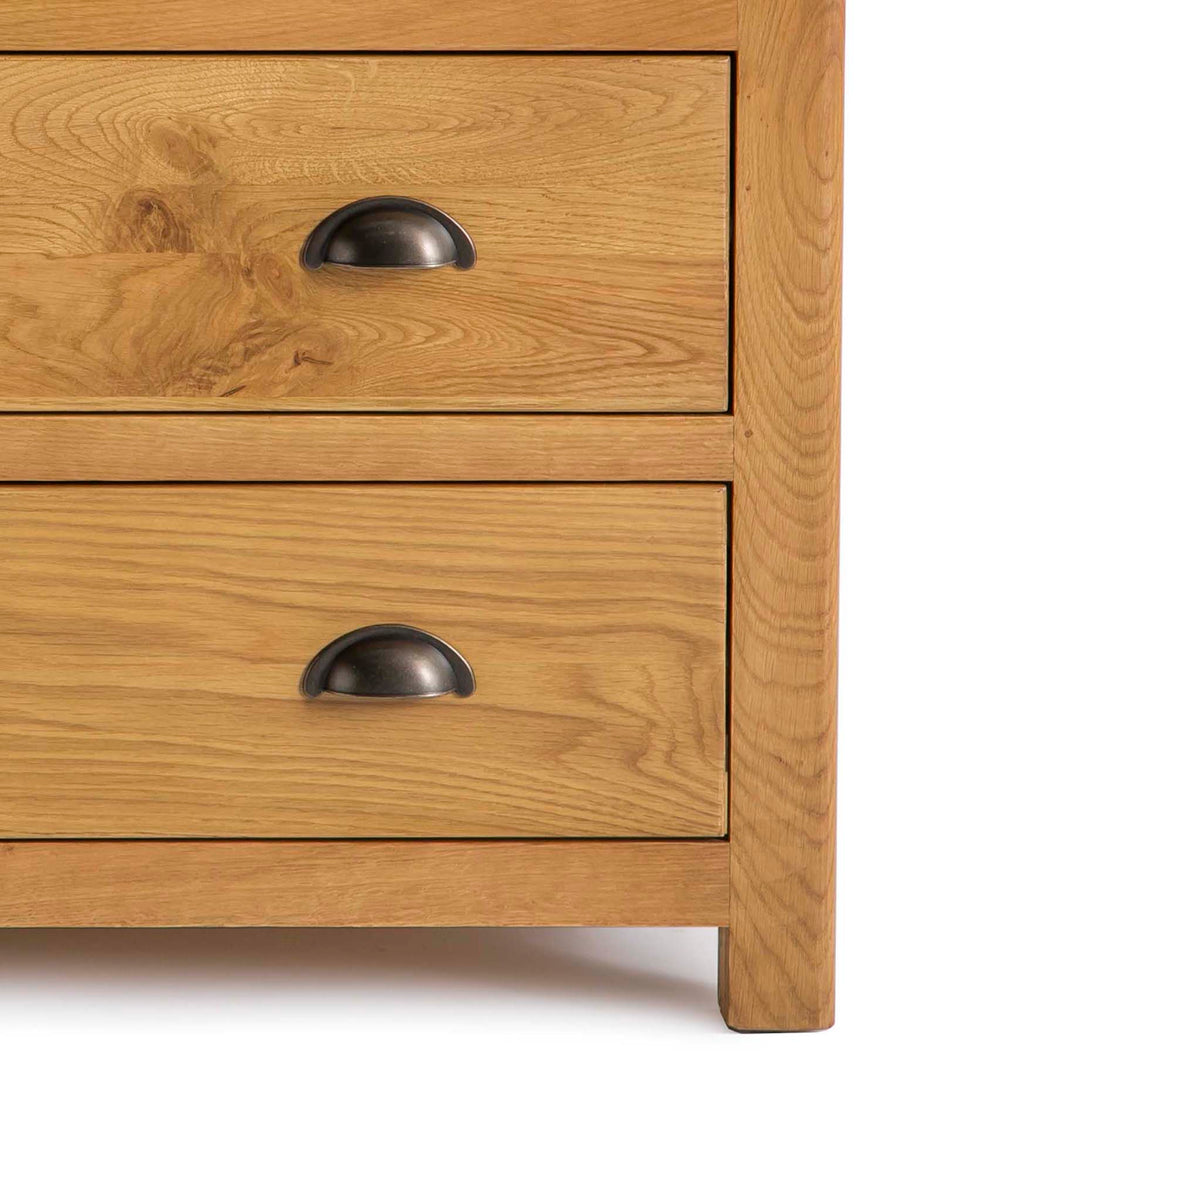 Roseland Oak 2 Over 2 Drawer Chest of Drawers - Close up of bottom of chest